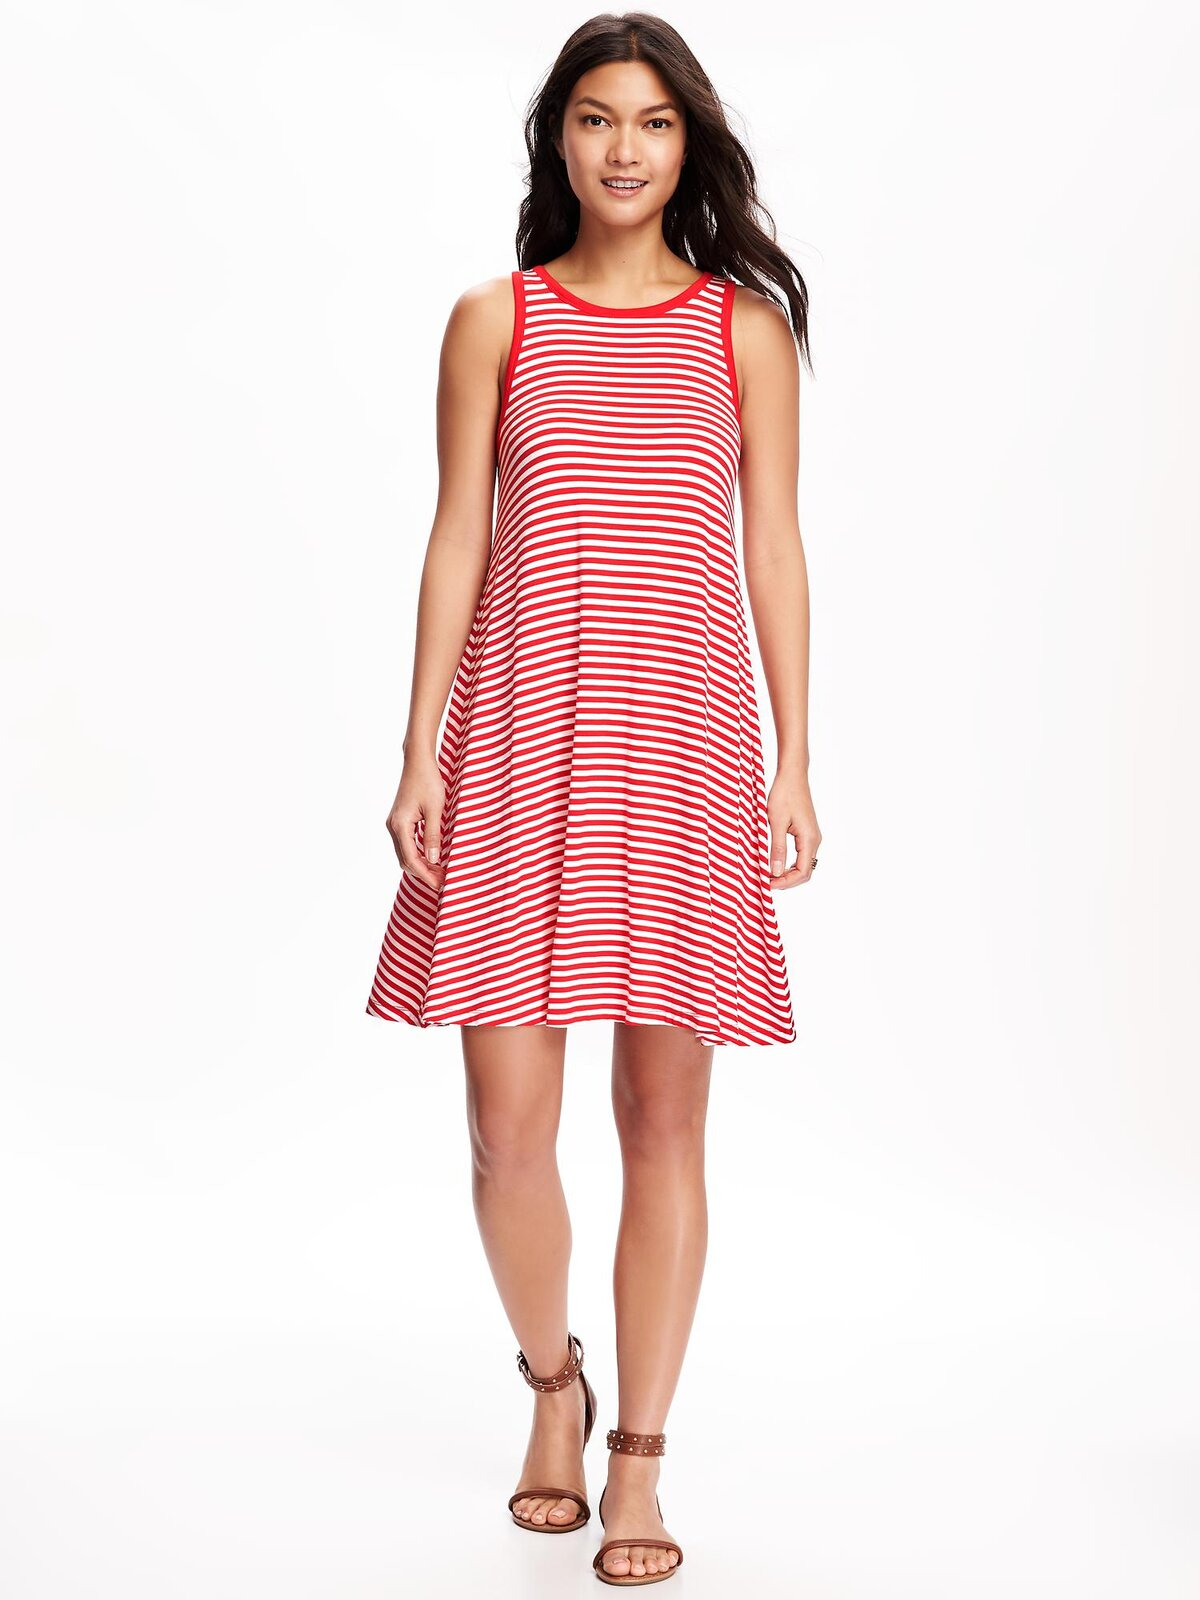 808ca37c9020de The internet is super freaking out over this  20 Old Navy dress ...